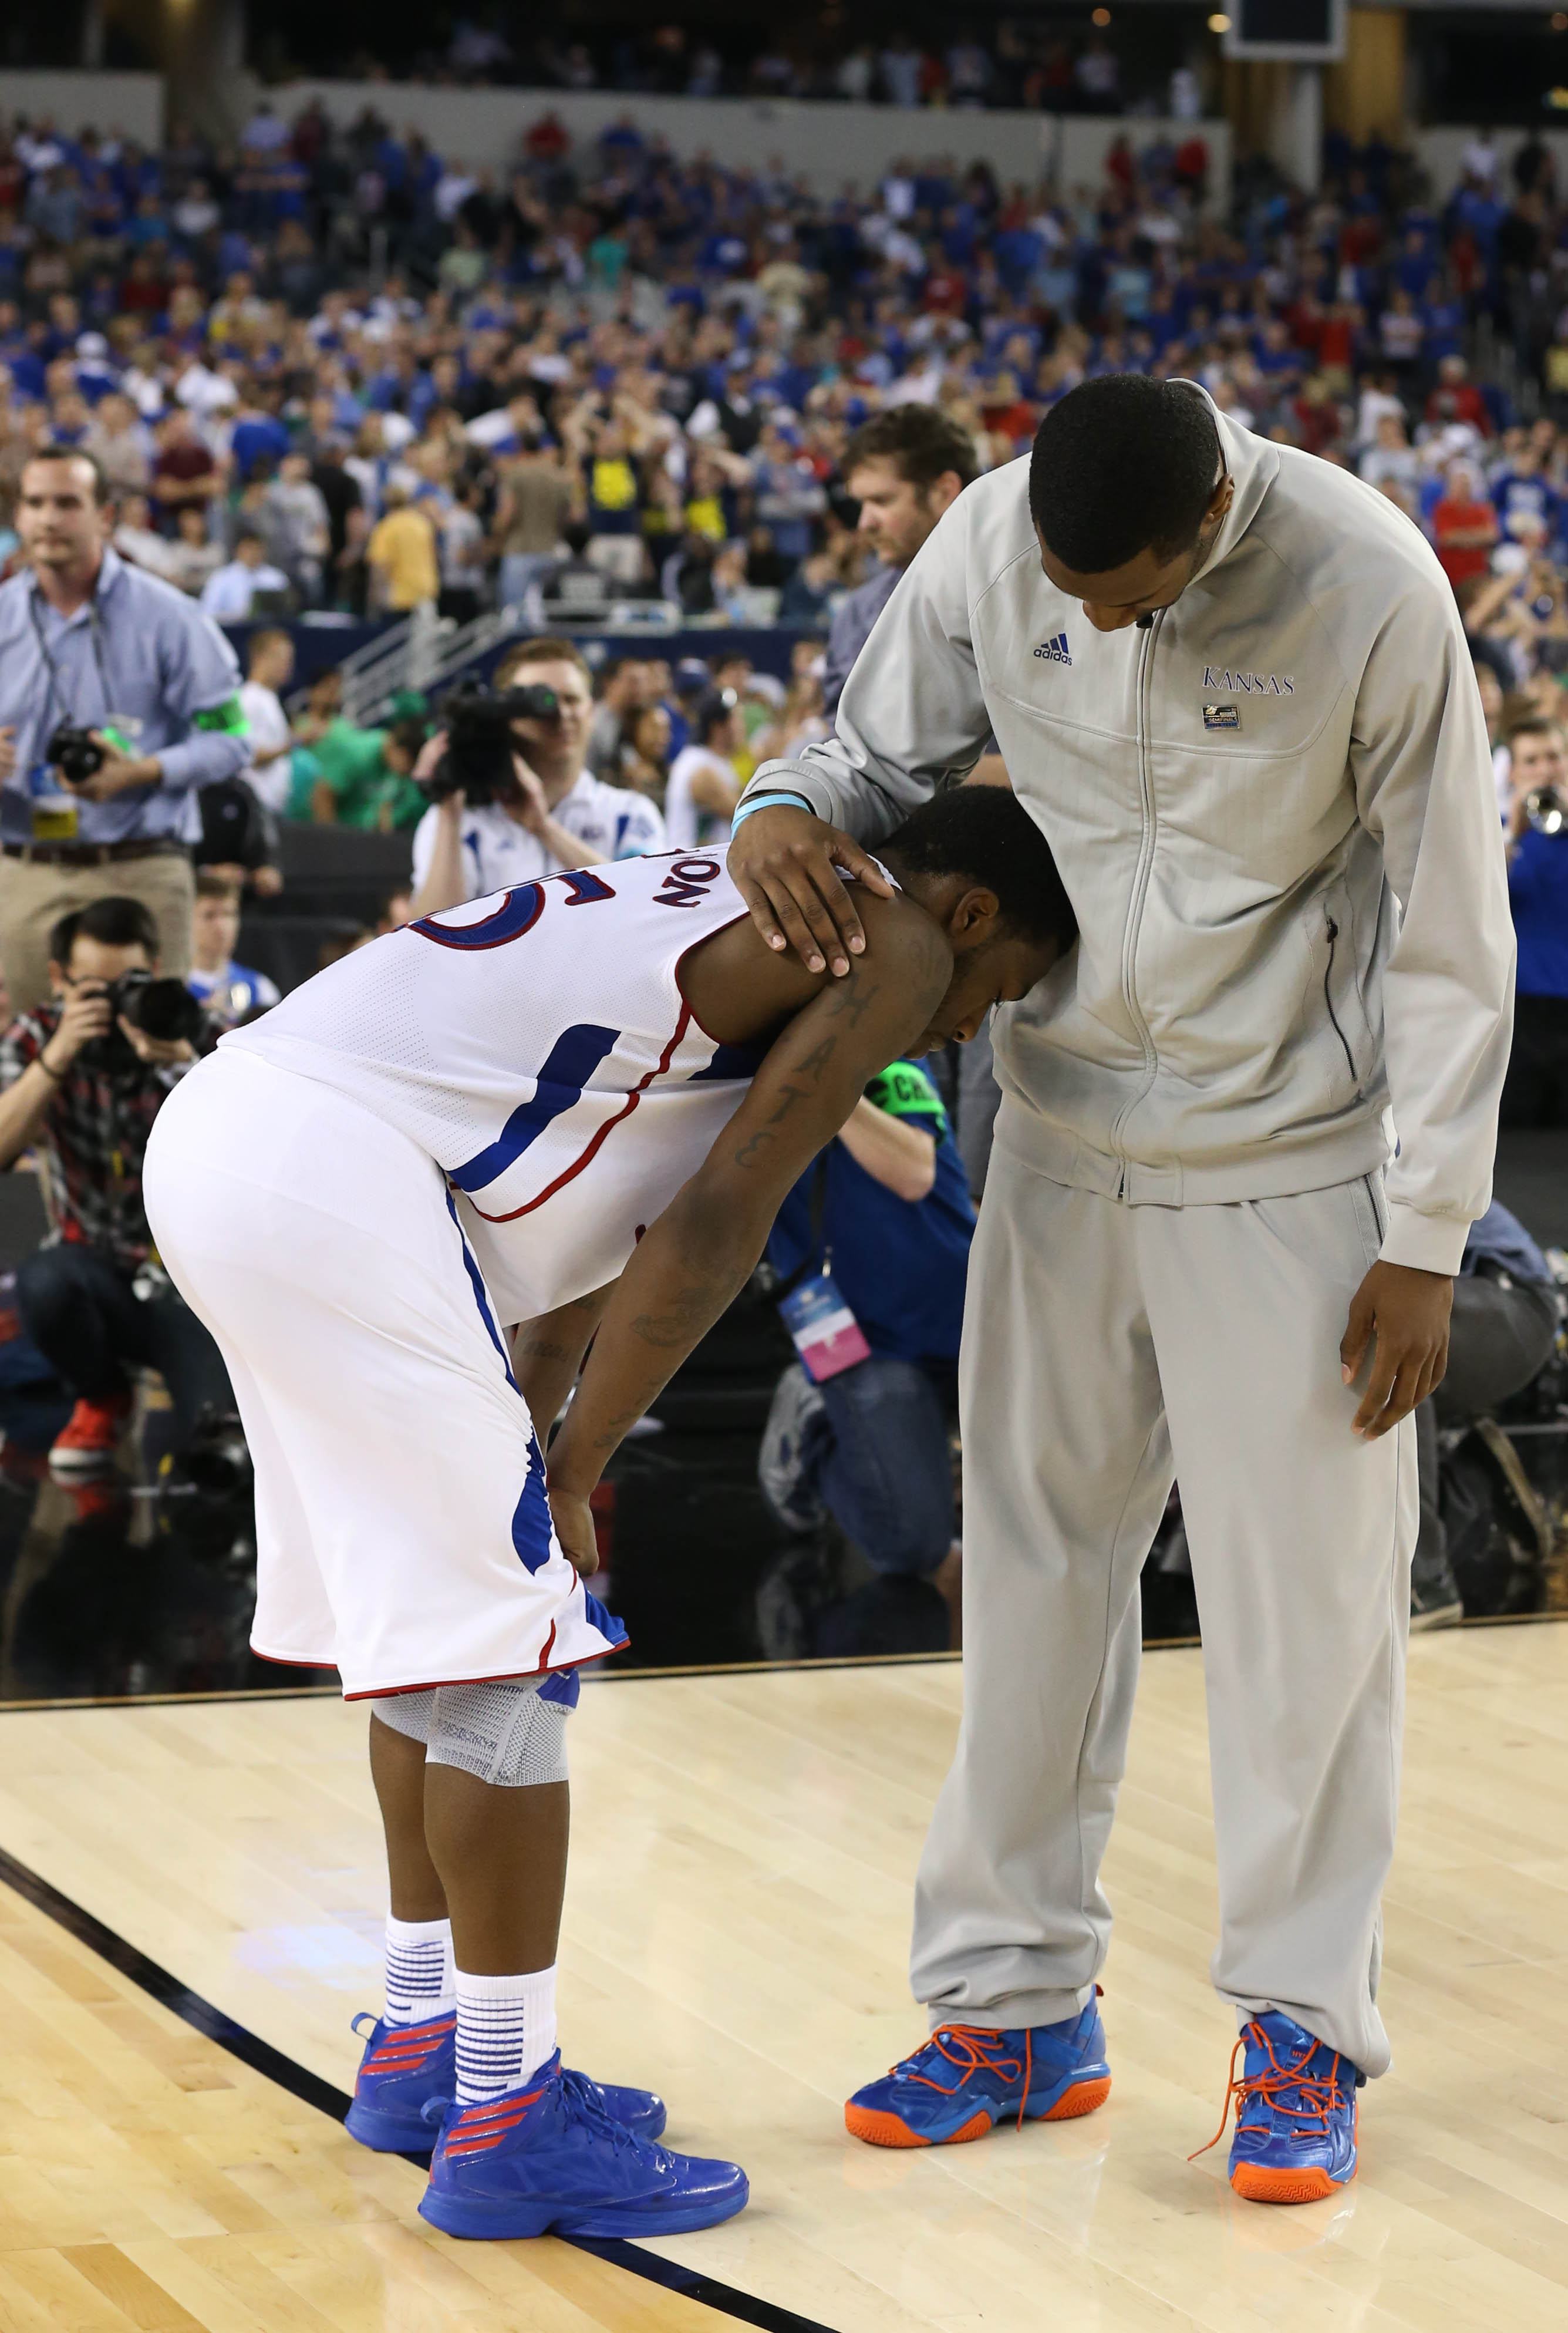 Jayhawks guard Elijah Johnson (L) reacts after losing to Michigan on Friday. (USA TODAY Sports)